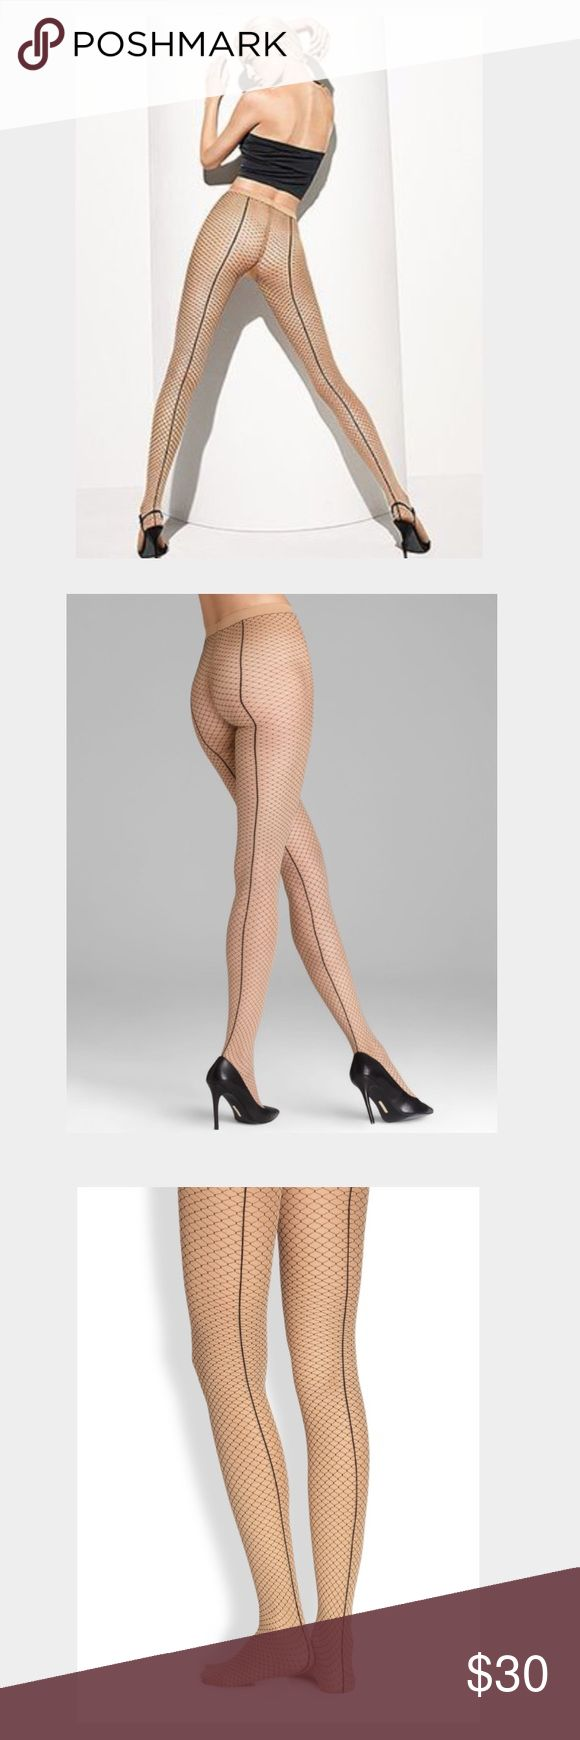 Wolford Iman Tights (Sahara/ Black) Medium Brand new - still in package Wolford Accessories Hosiery & Socks